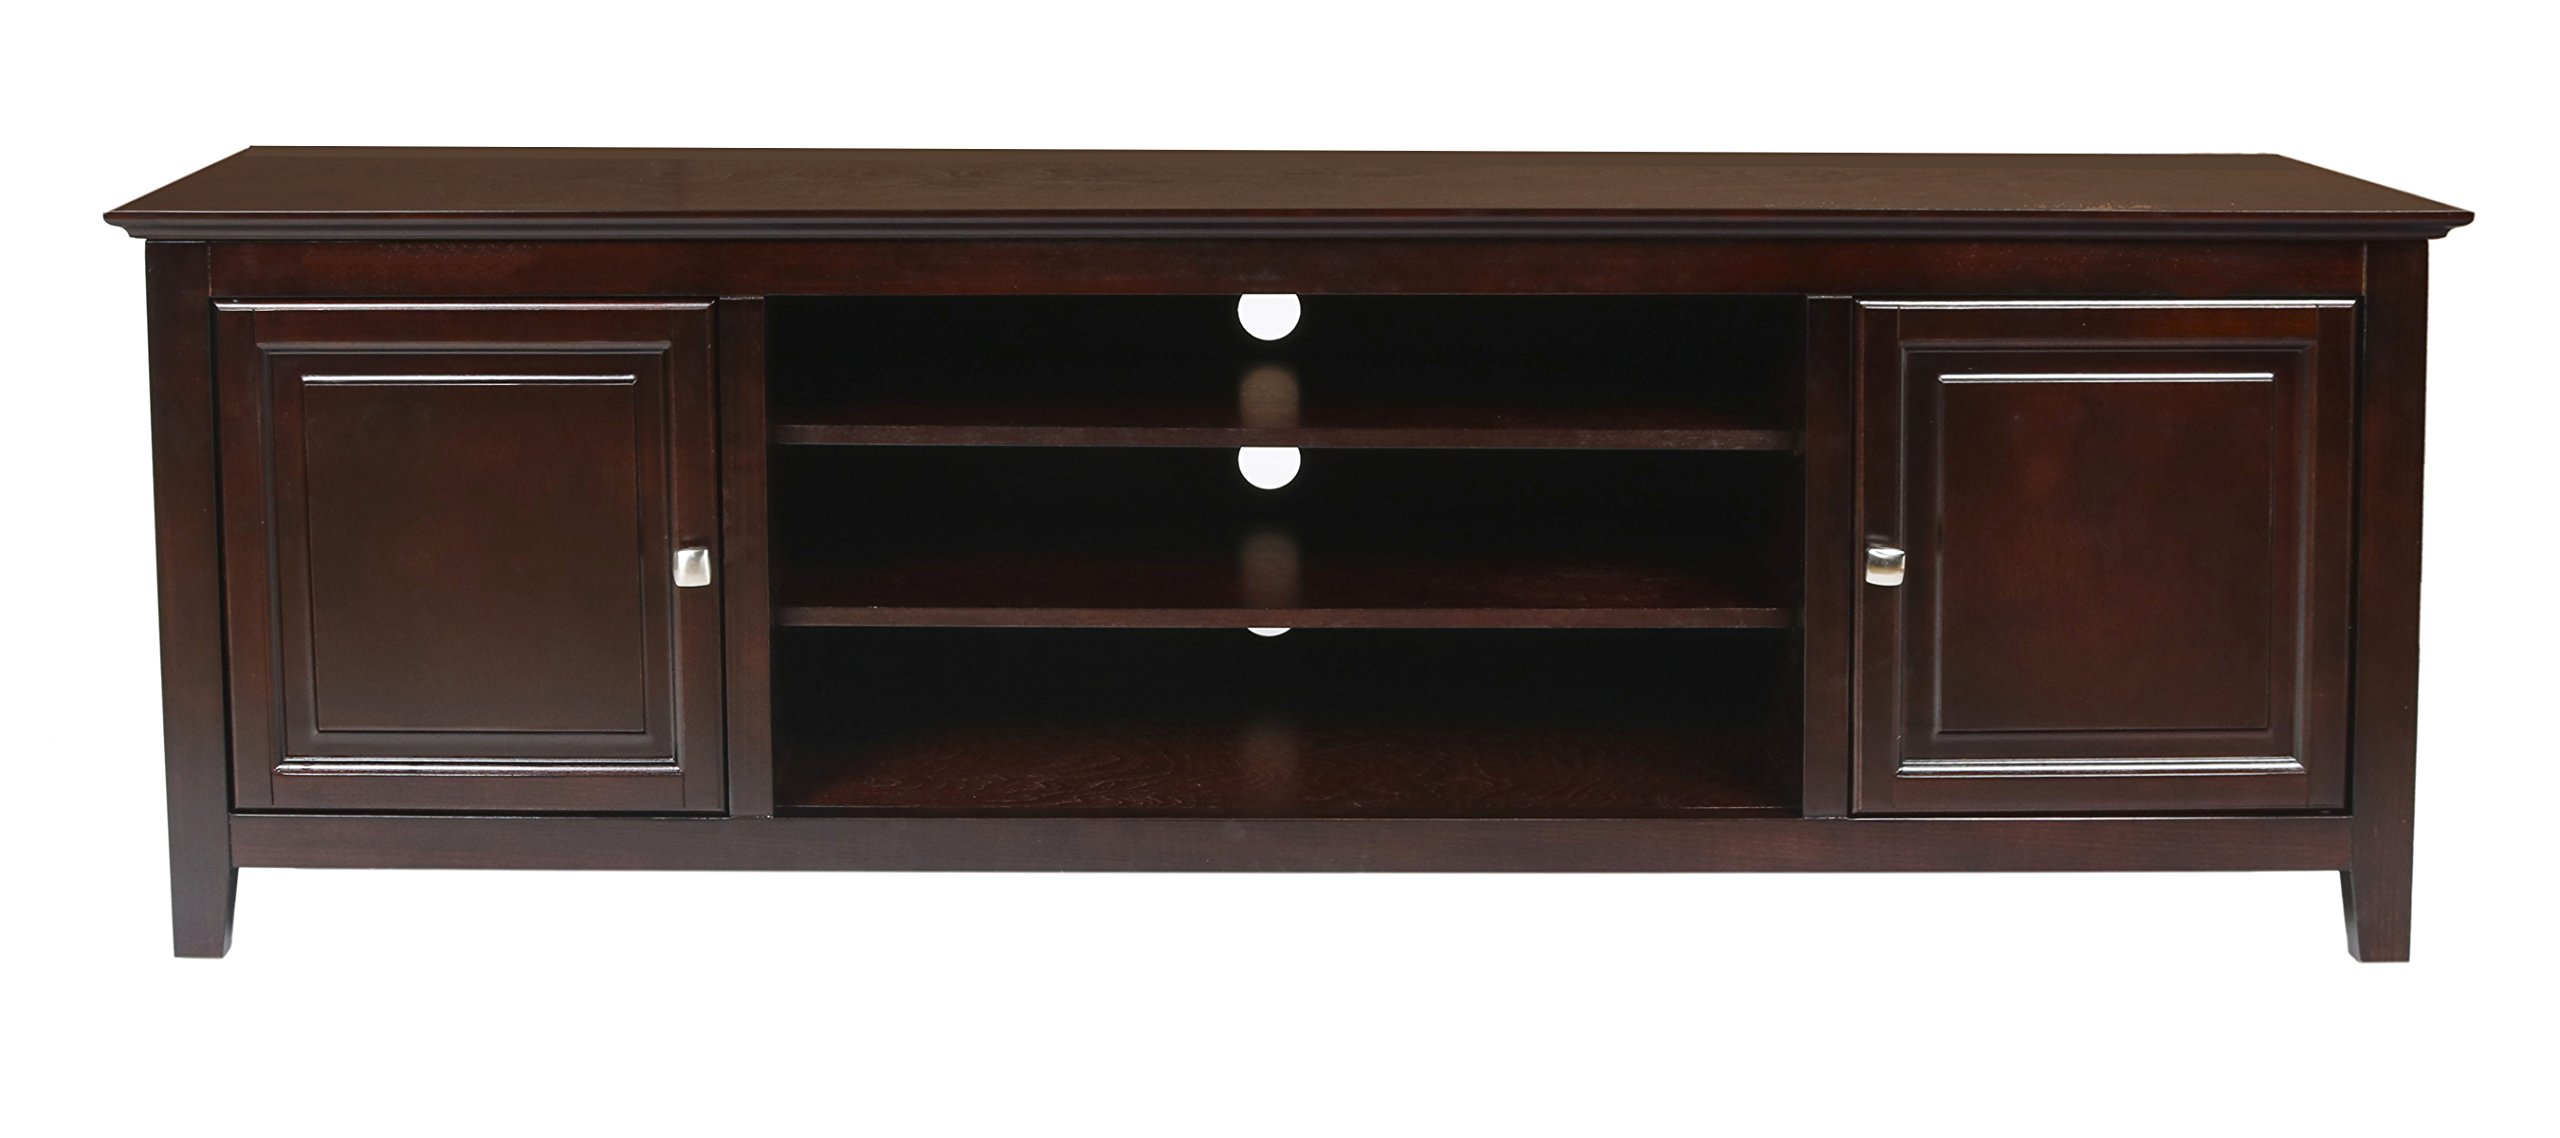 New Classic Guinness 72'' Merlot End Unit by New Classic